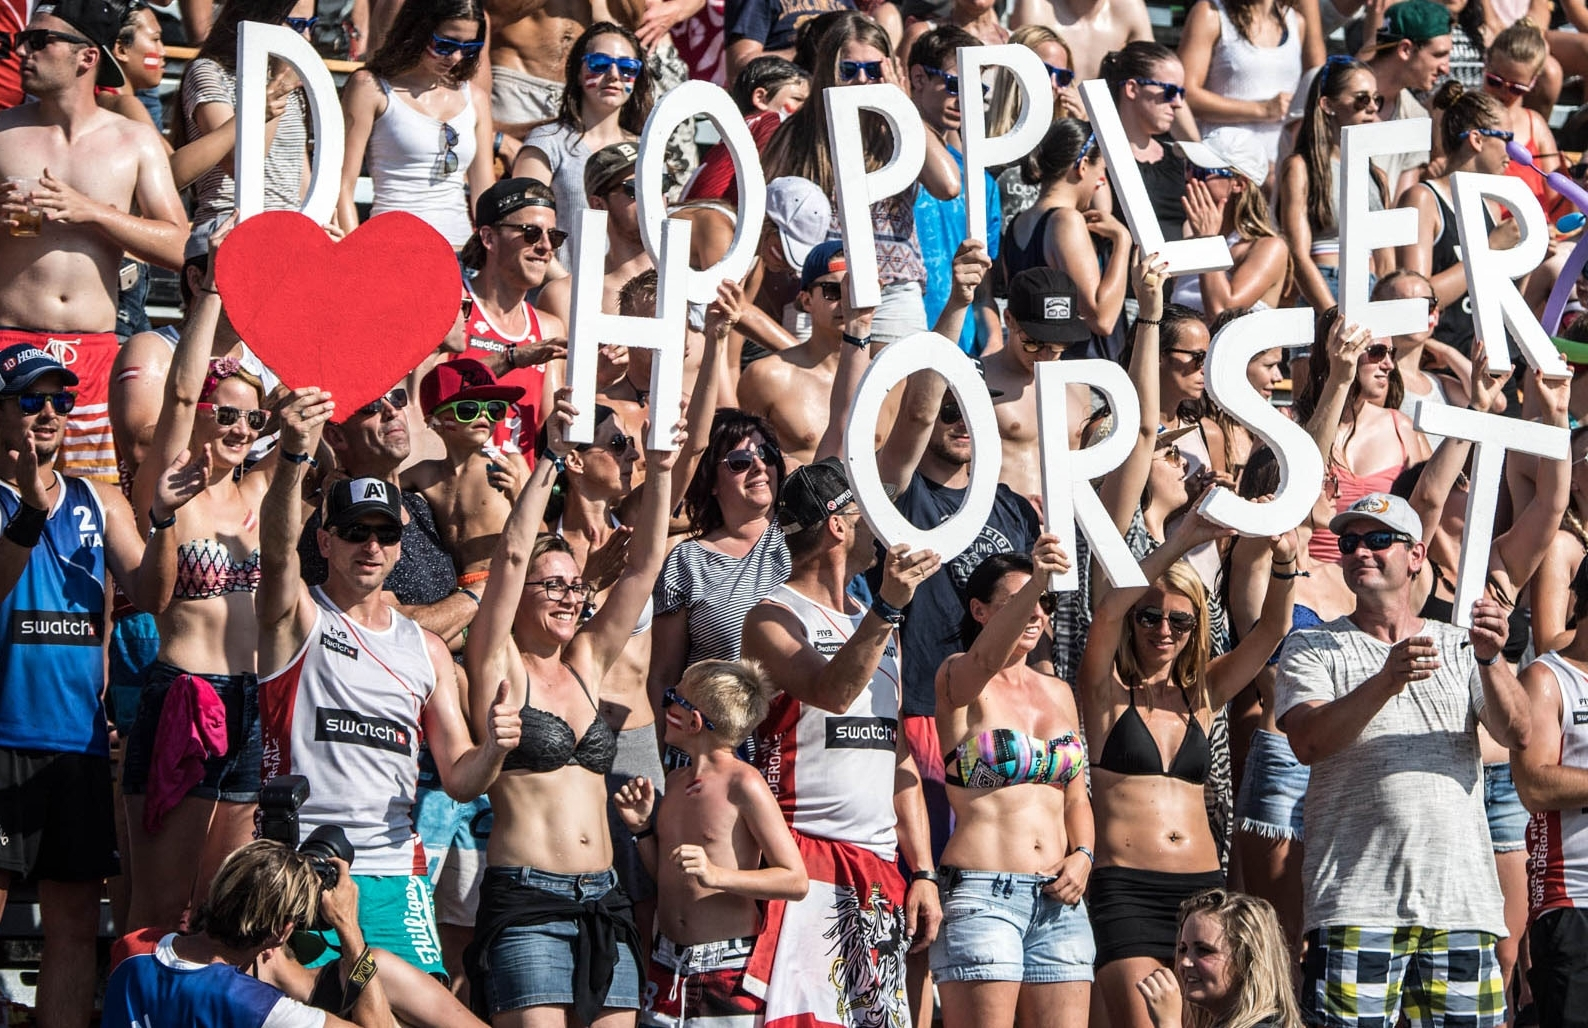 Doppler/Horst will have the loyal backing of the Austria fans in Klagenfurt this week. Photocredit: Predrag Vuckovic.